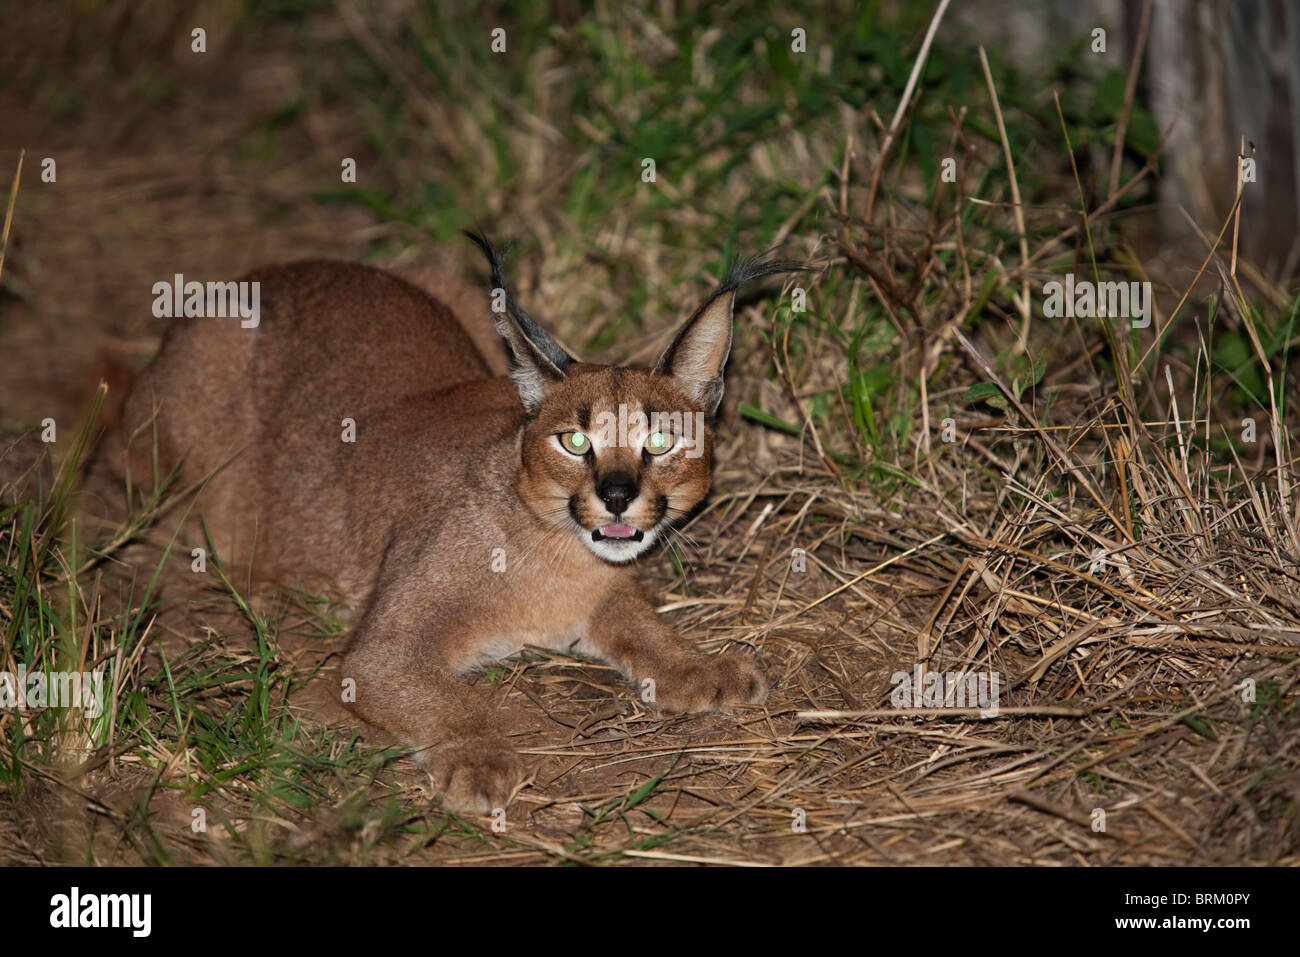 A caracal crouched and snarling at night - Stock Image